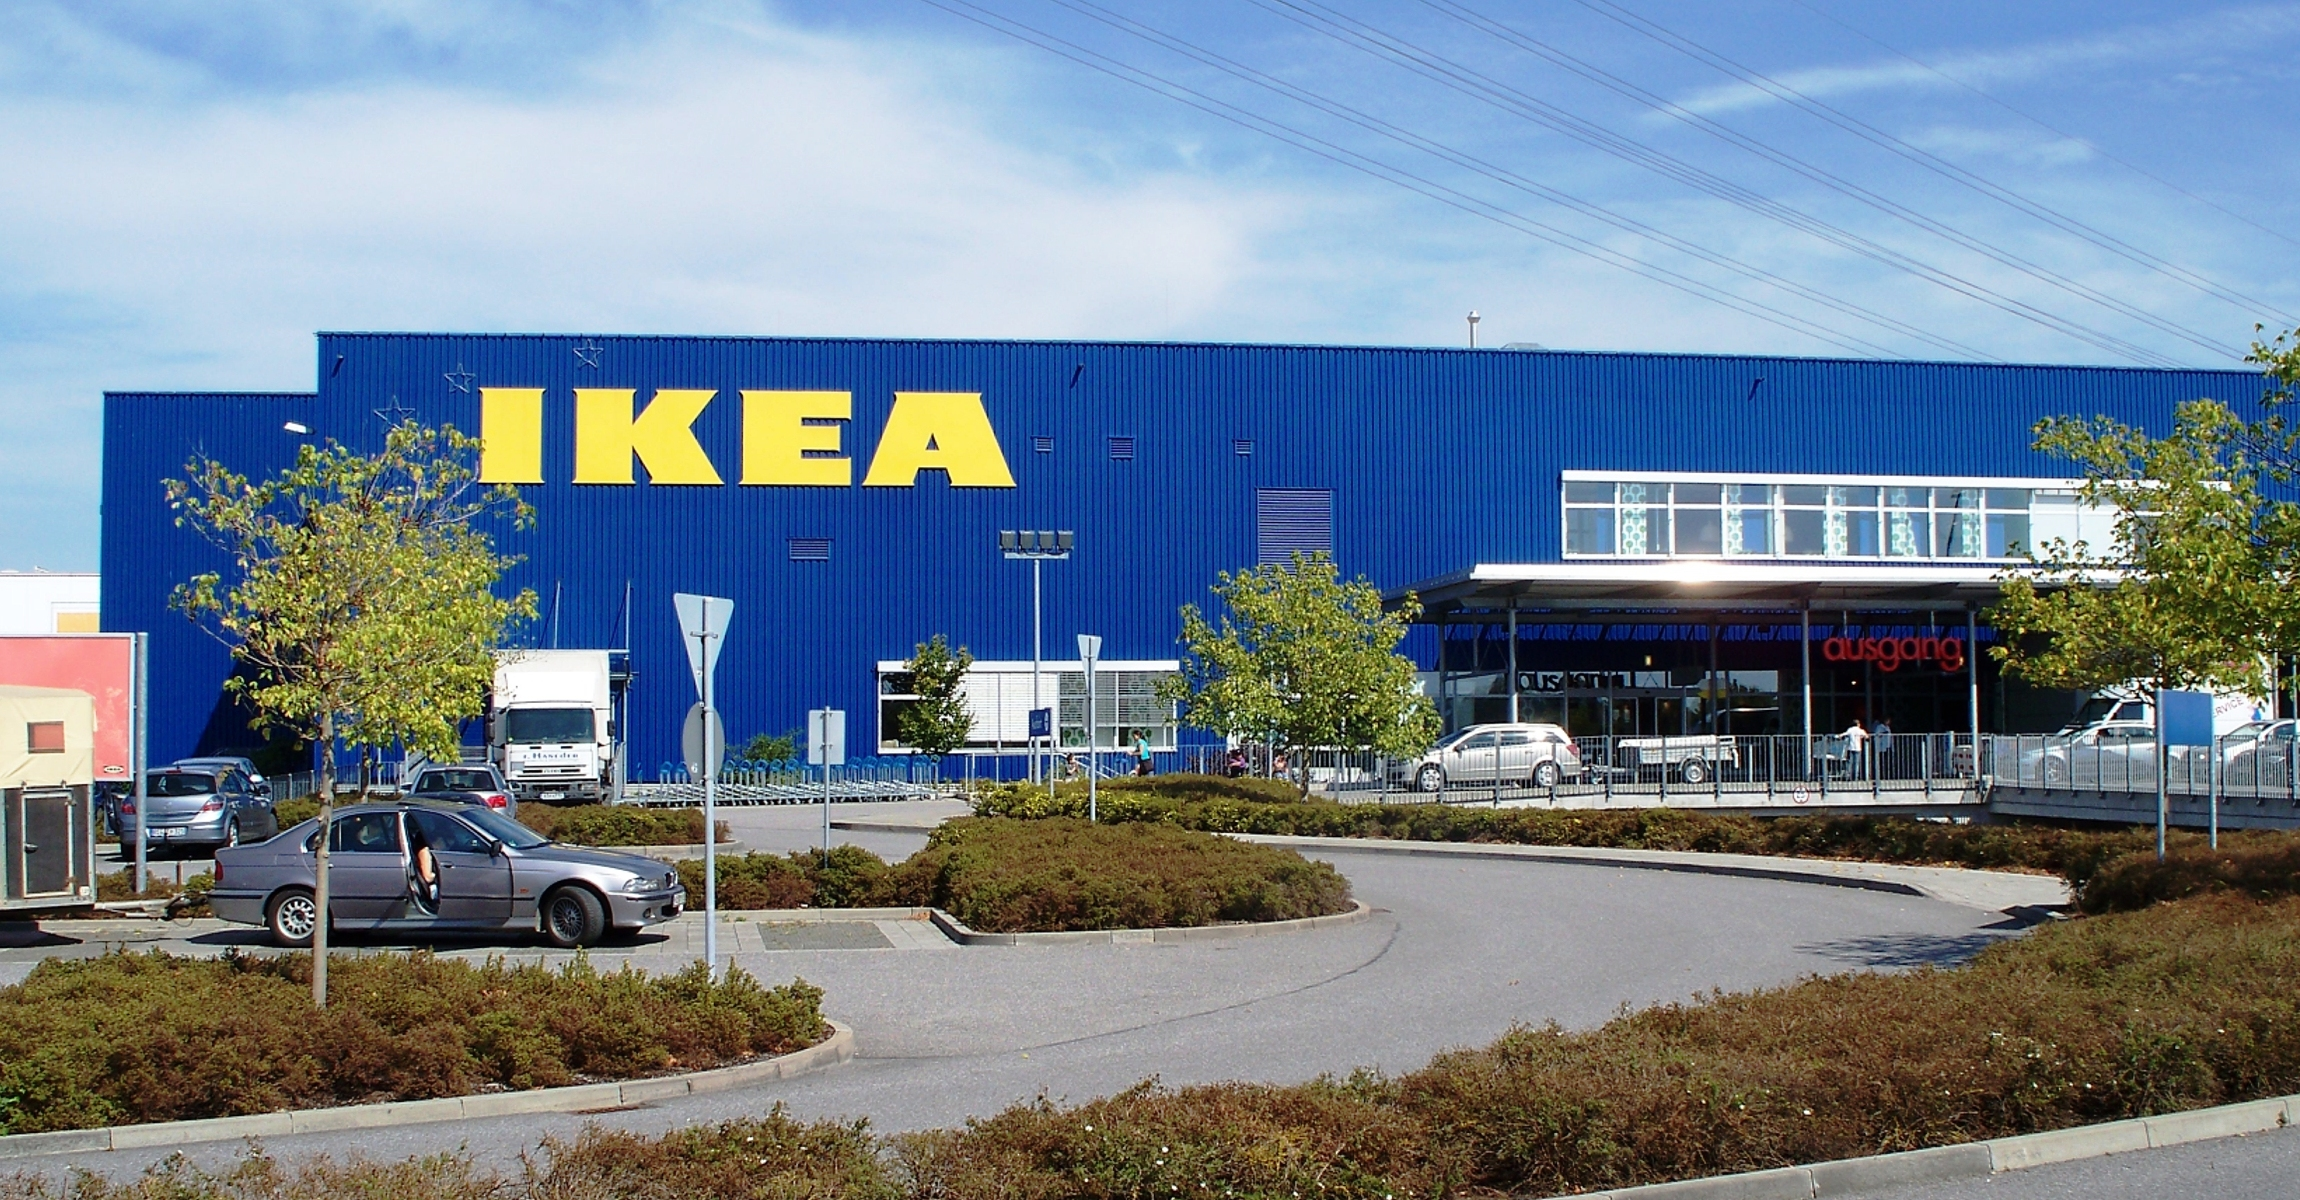 IKEA held a week-long house party